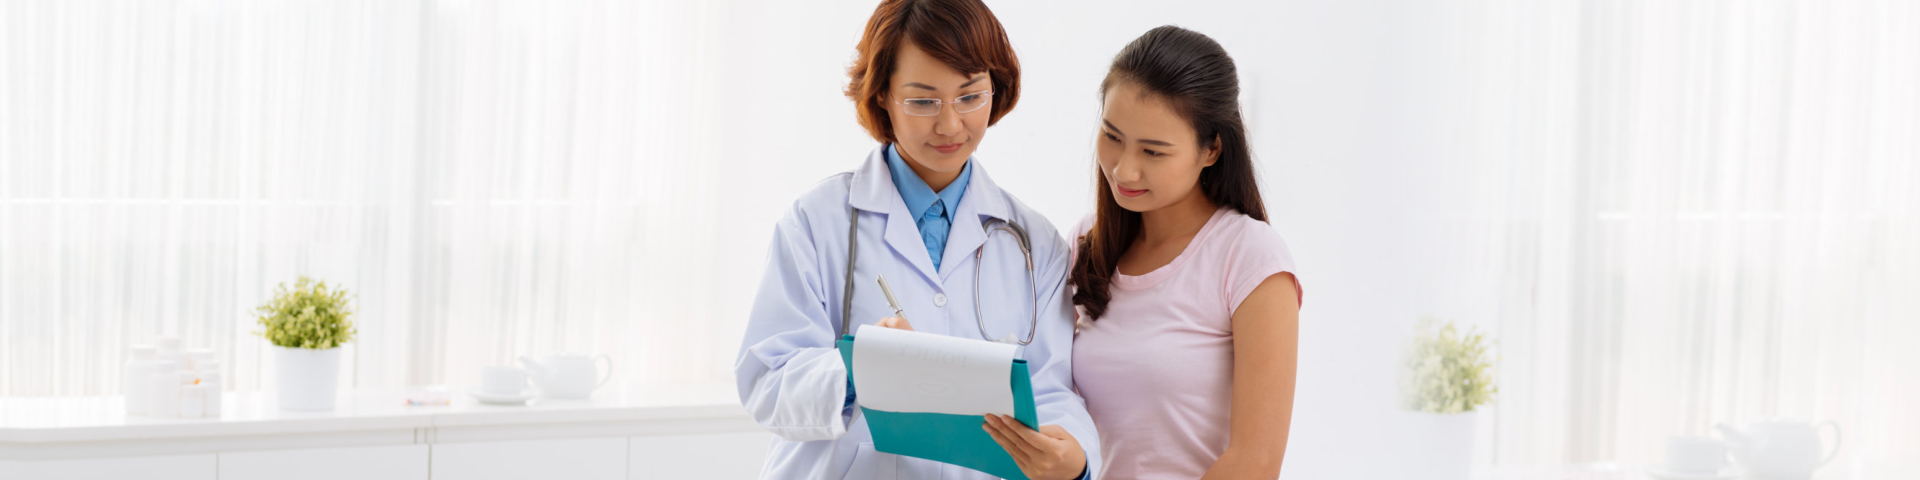 doctor and patient looking at a notepad